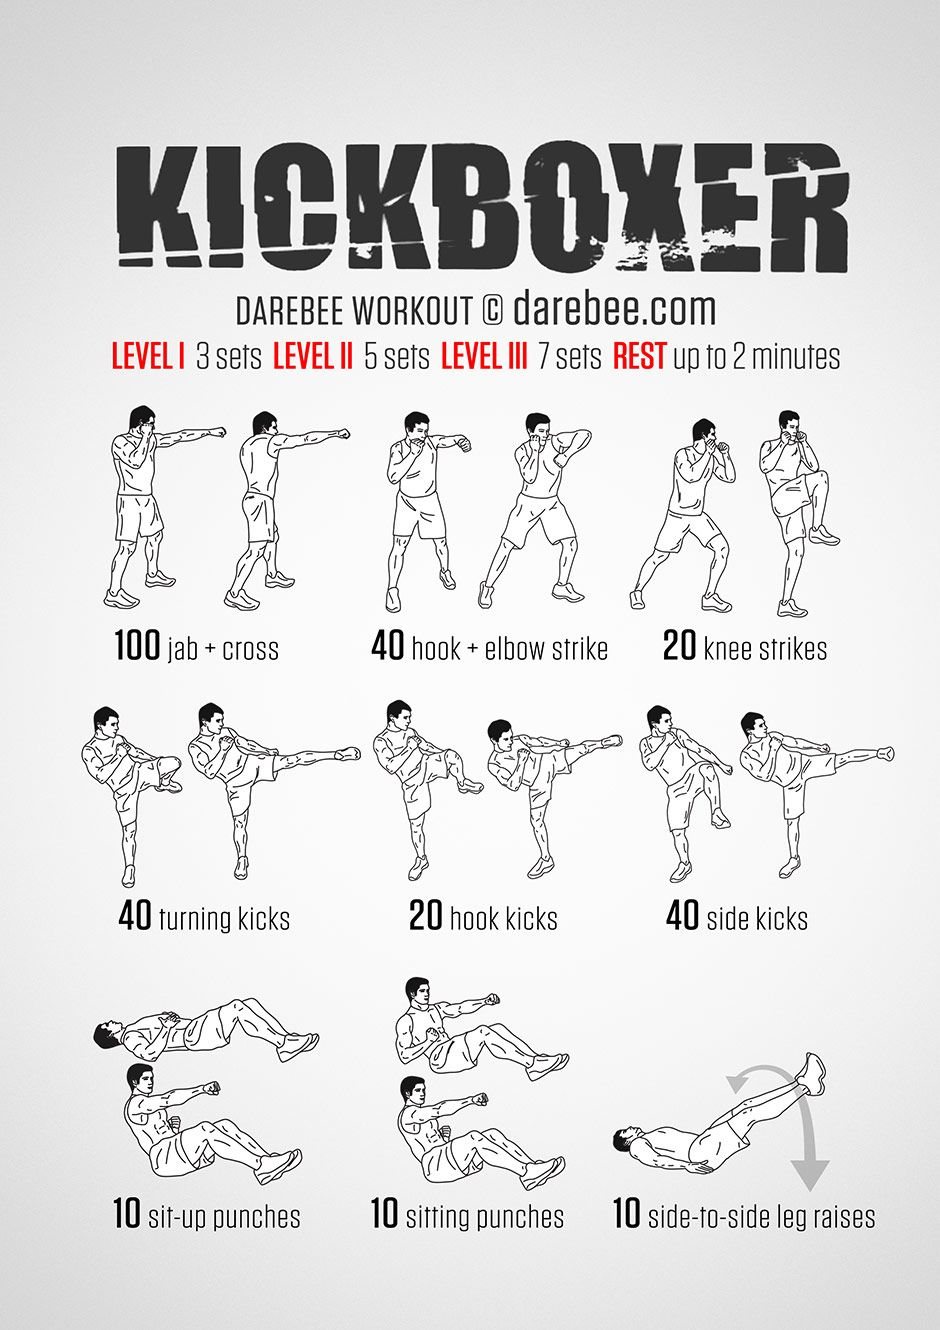 Kickboxer Workout Mma Workout Kickboxing Workout Boxing Classes